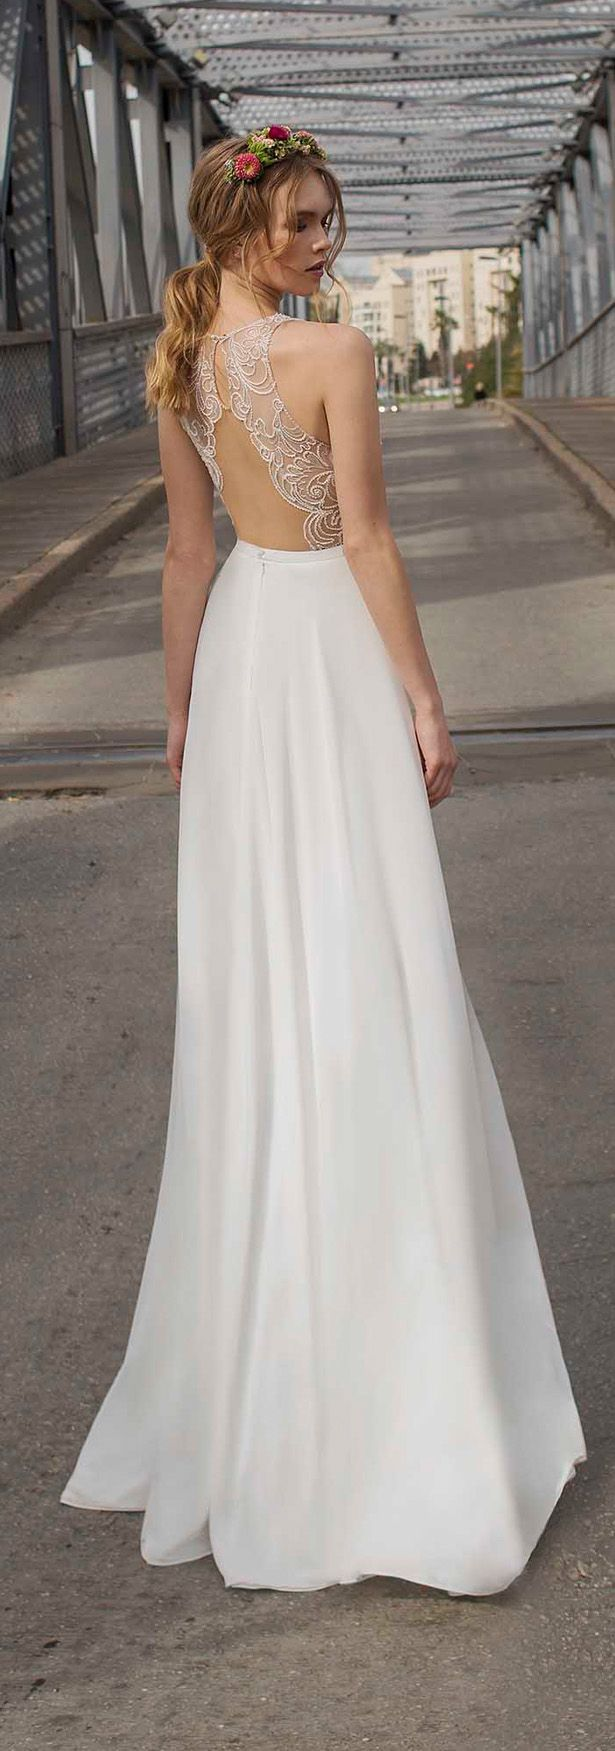 Limorrosen bridal urban dreams collection women wear wedding limor rosen wedding dress olivia another possible for true summer white to the ombrellifo Image collections